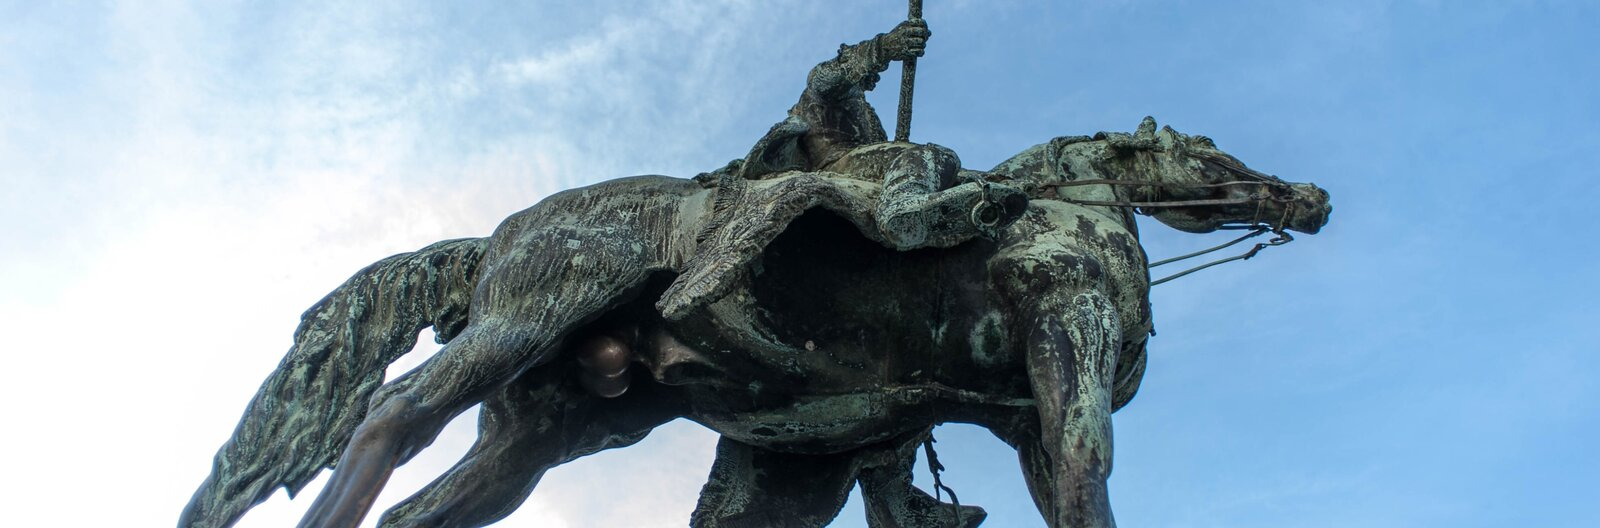 5 Budapest statues that bring good luck when you touch them